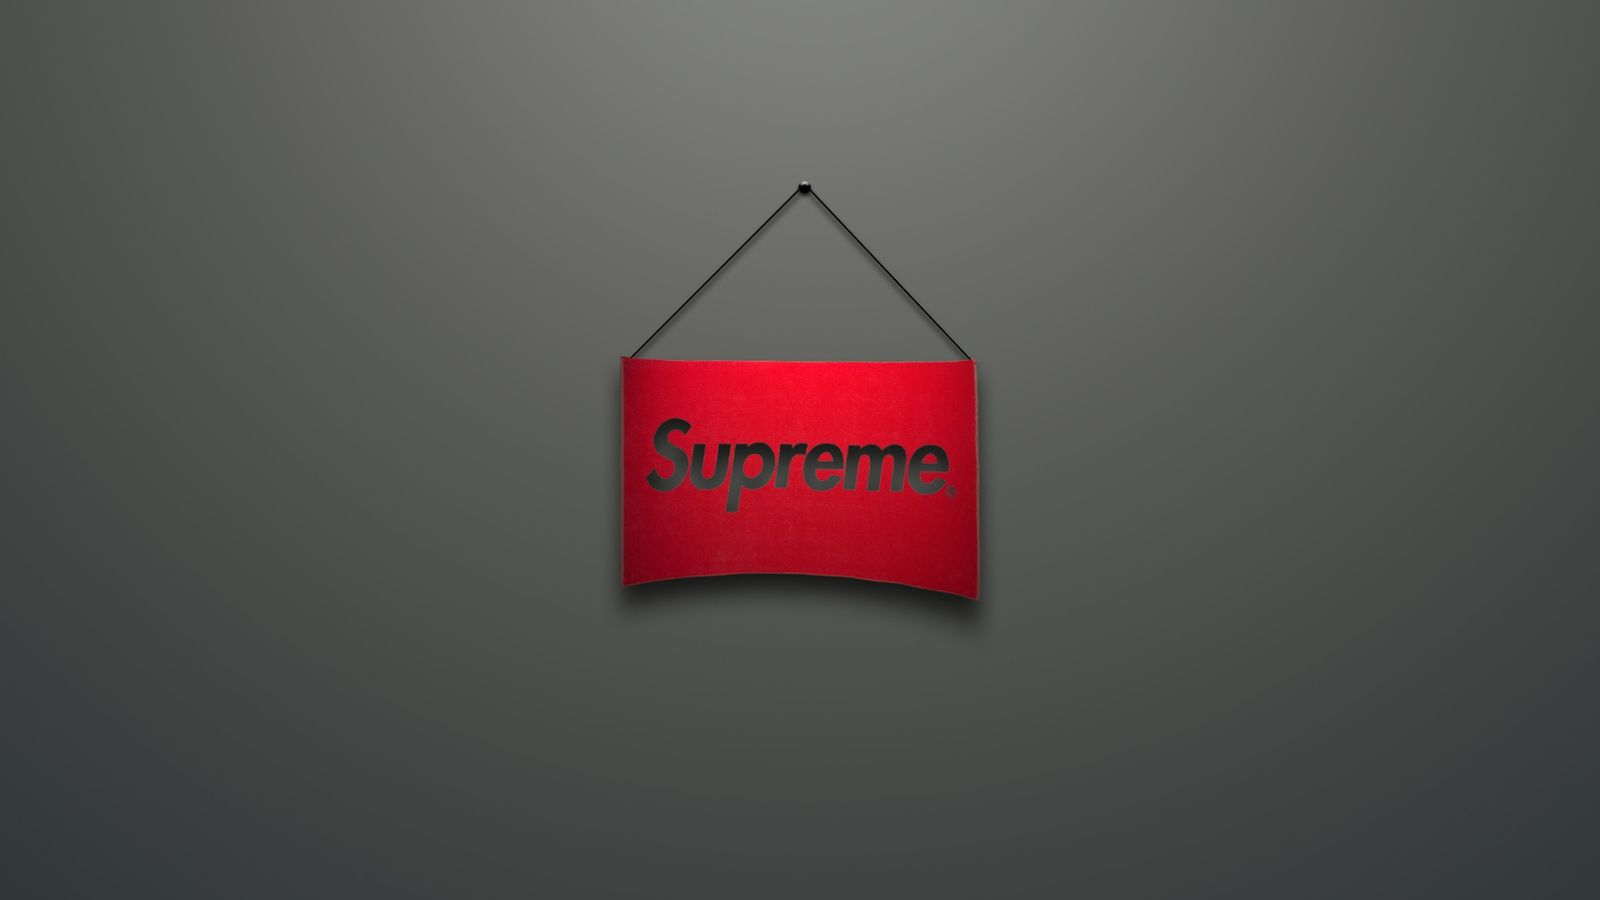 Supreme HD Wallpaper Picture Image 1600x900